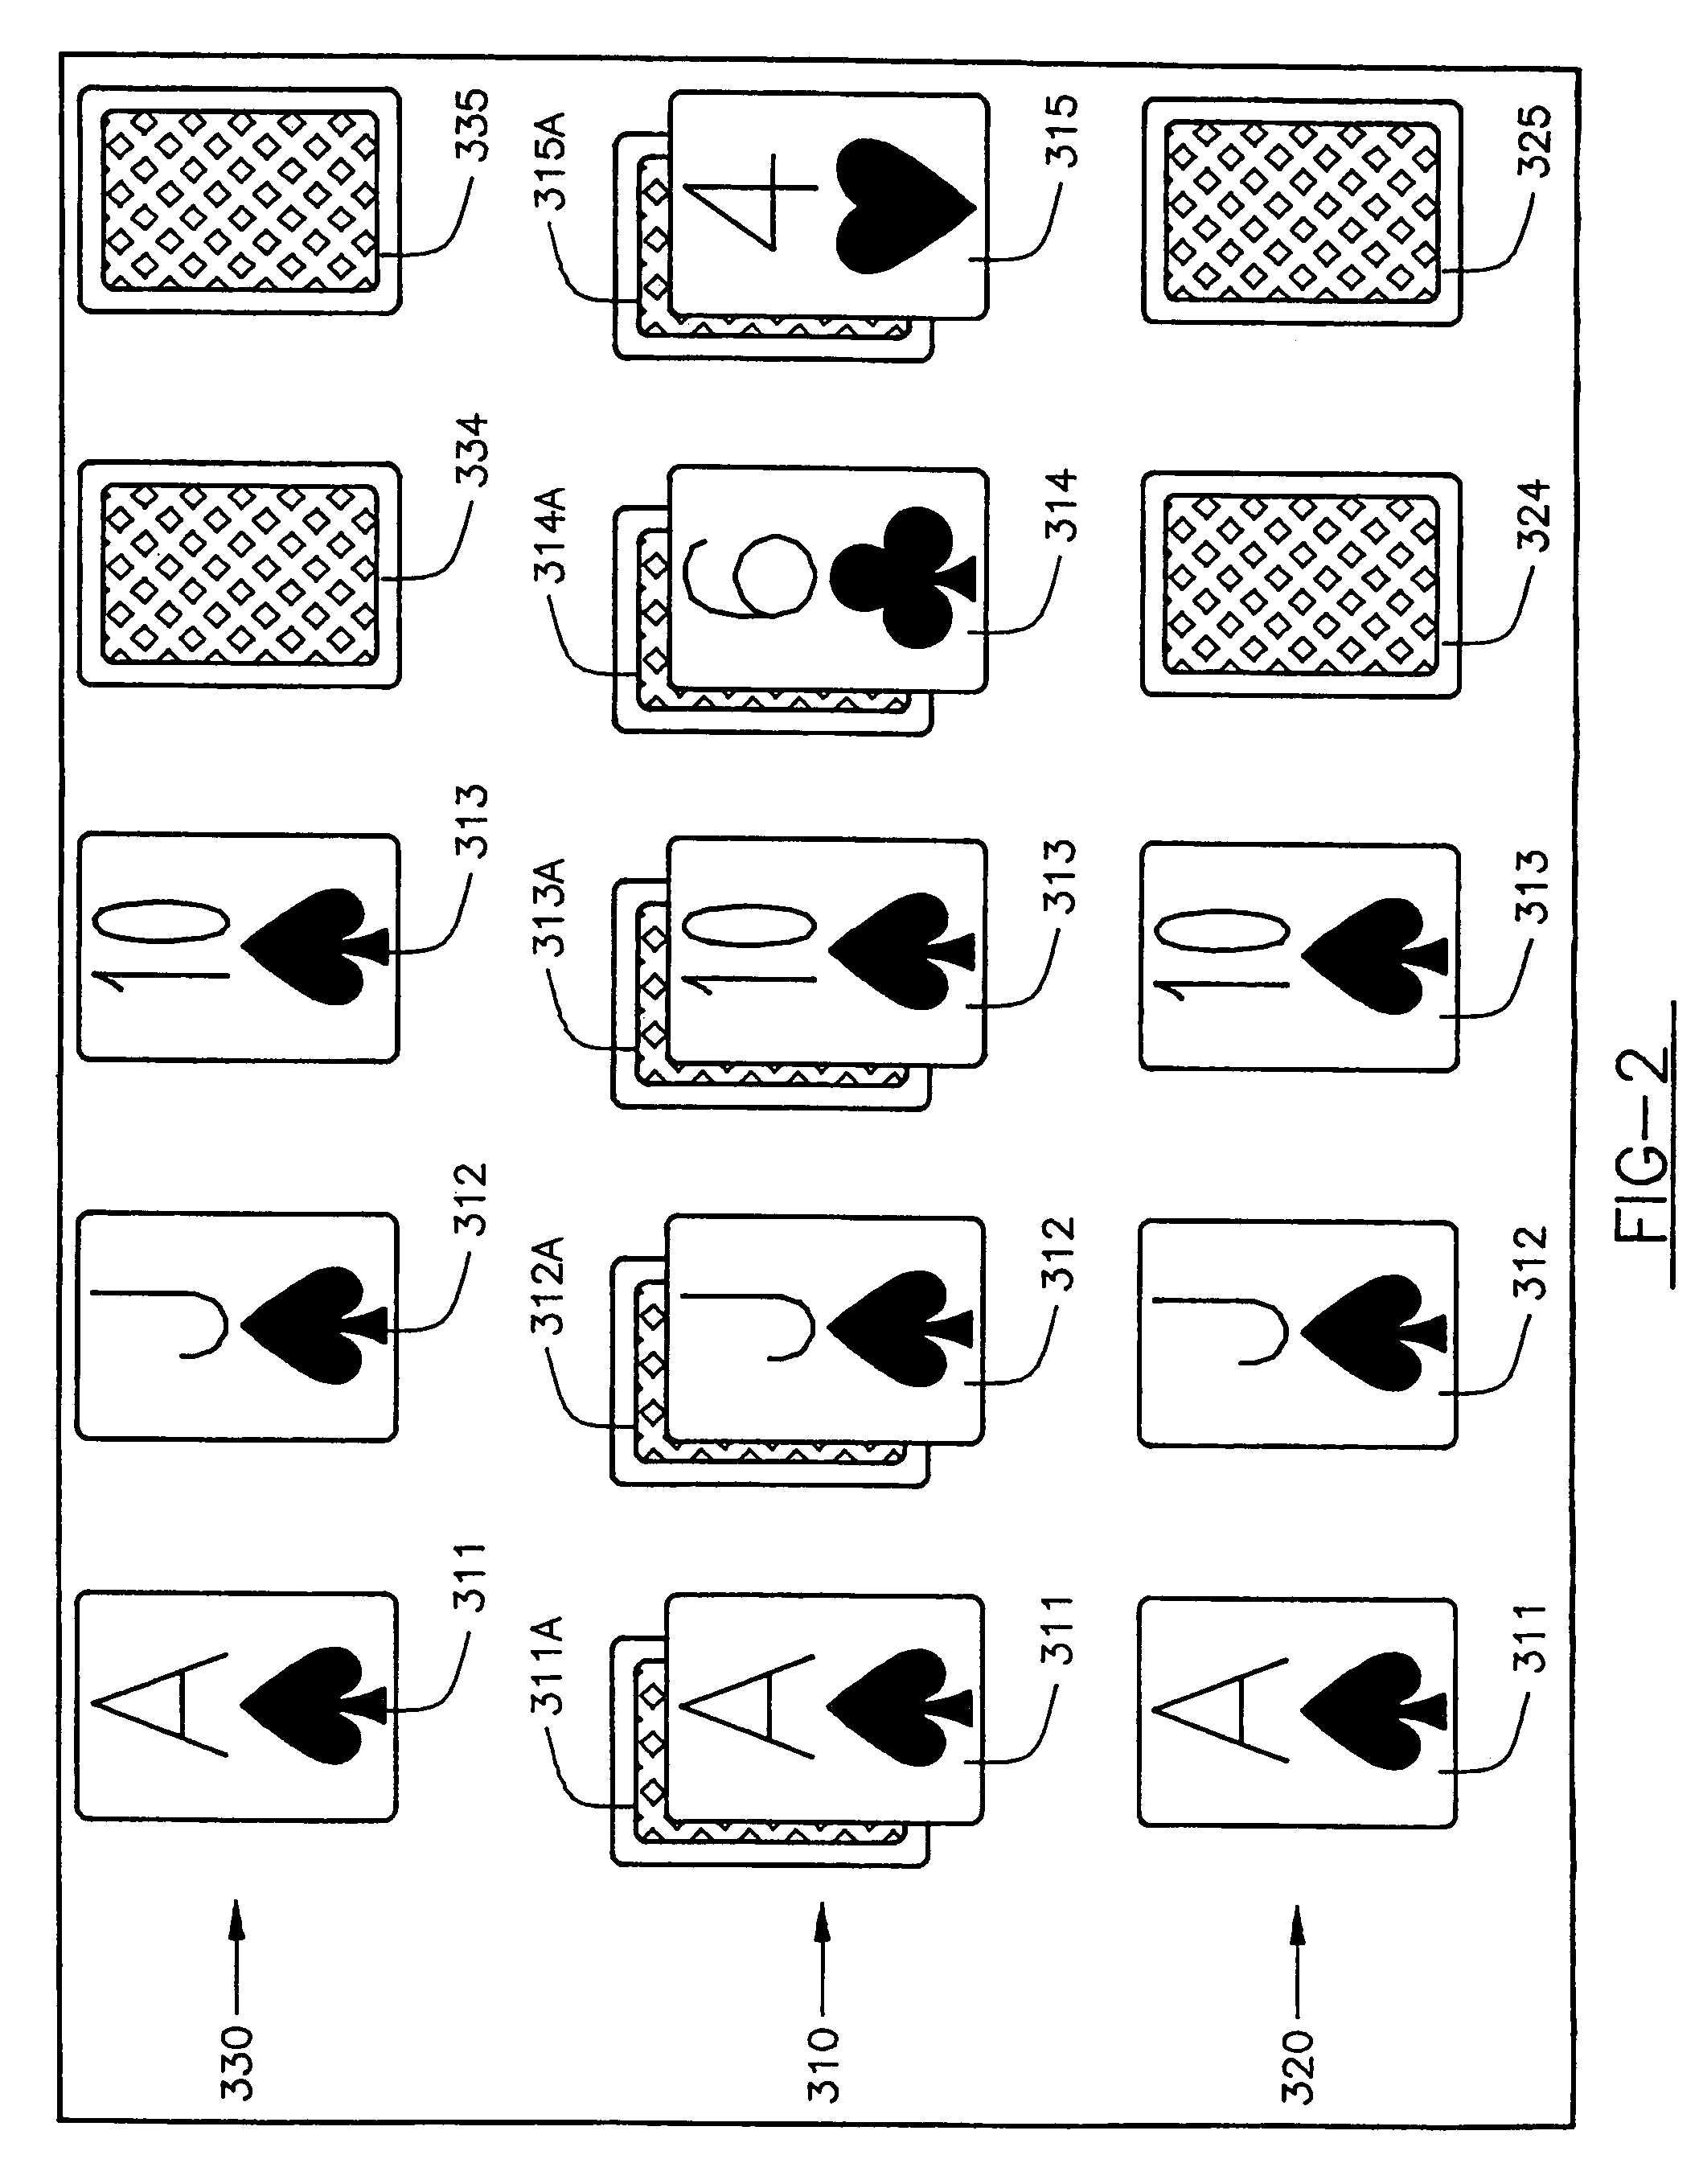 2 card poker hand rankings mnemonic devices